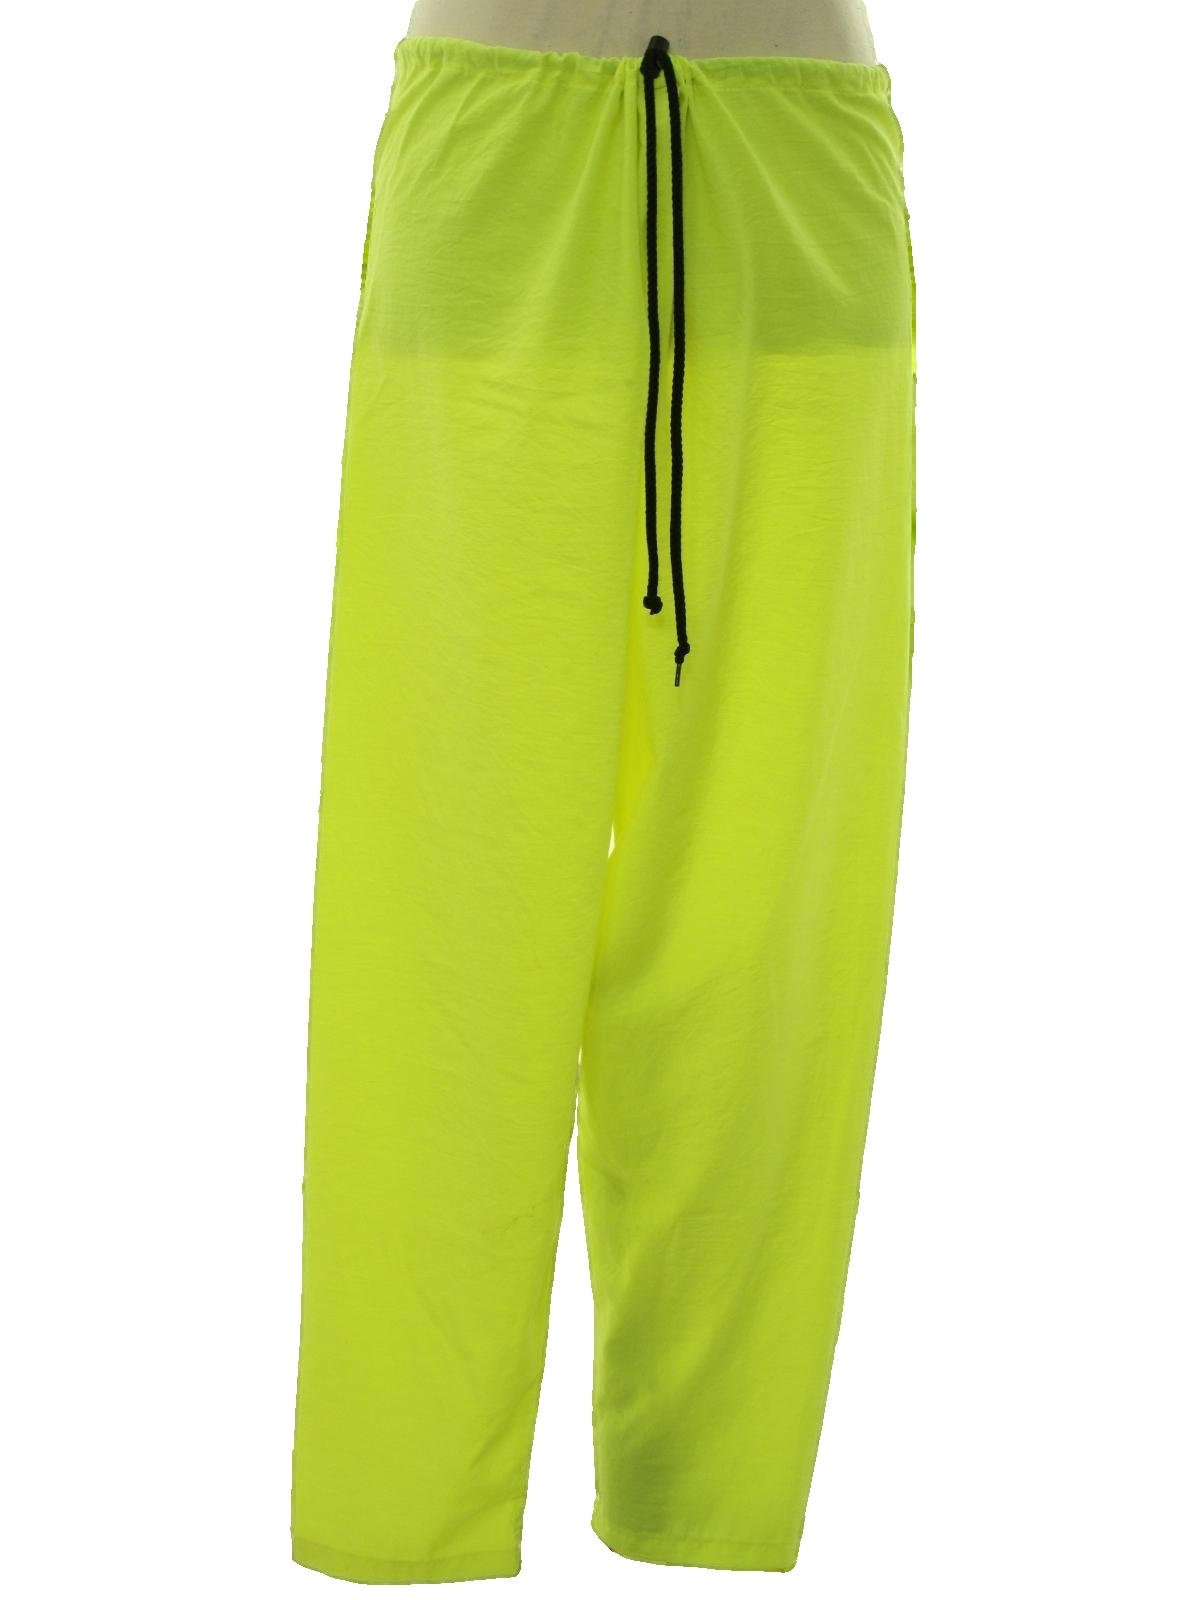 Men's Lime Green Flat Front Dress Pants These men's lime green dress pants are a perfect way to spice up your summer wardrobe with vibrant color. Made from a blend of polyester and rayon, these pants are comfortable and durable.